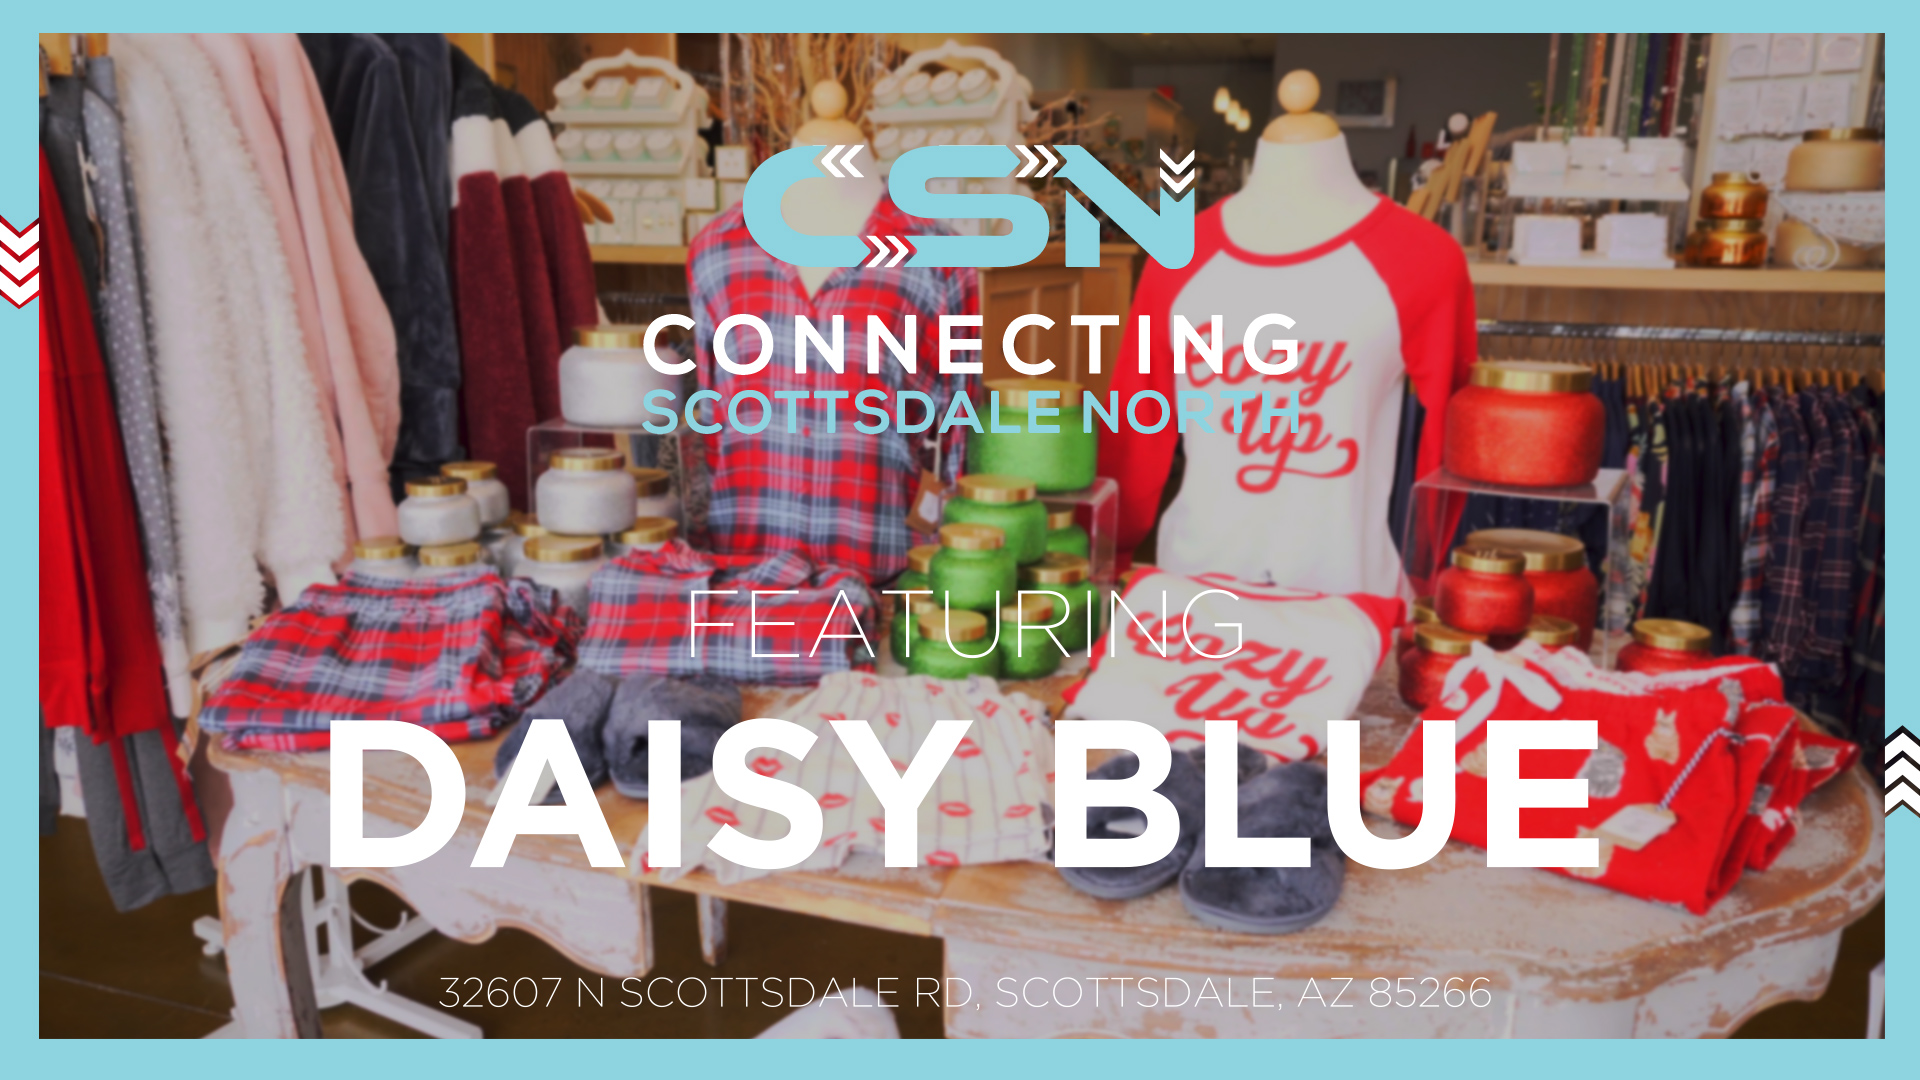 Connecting Scottsdale North Daisy Blue